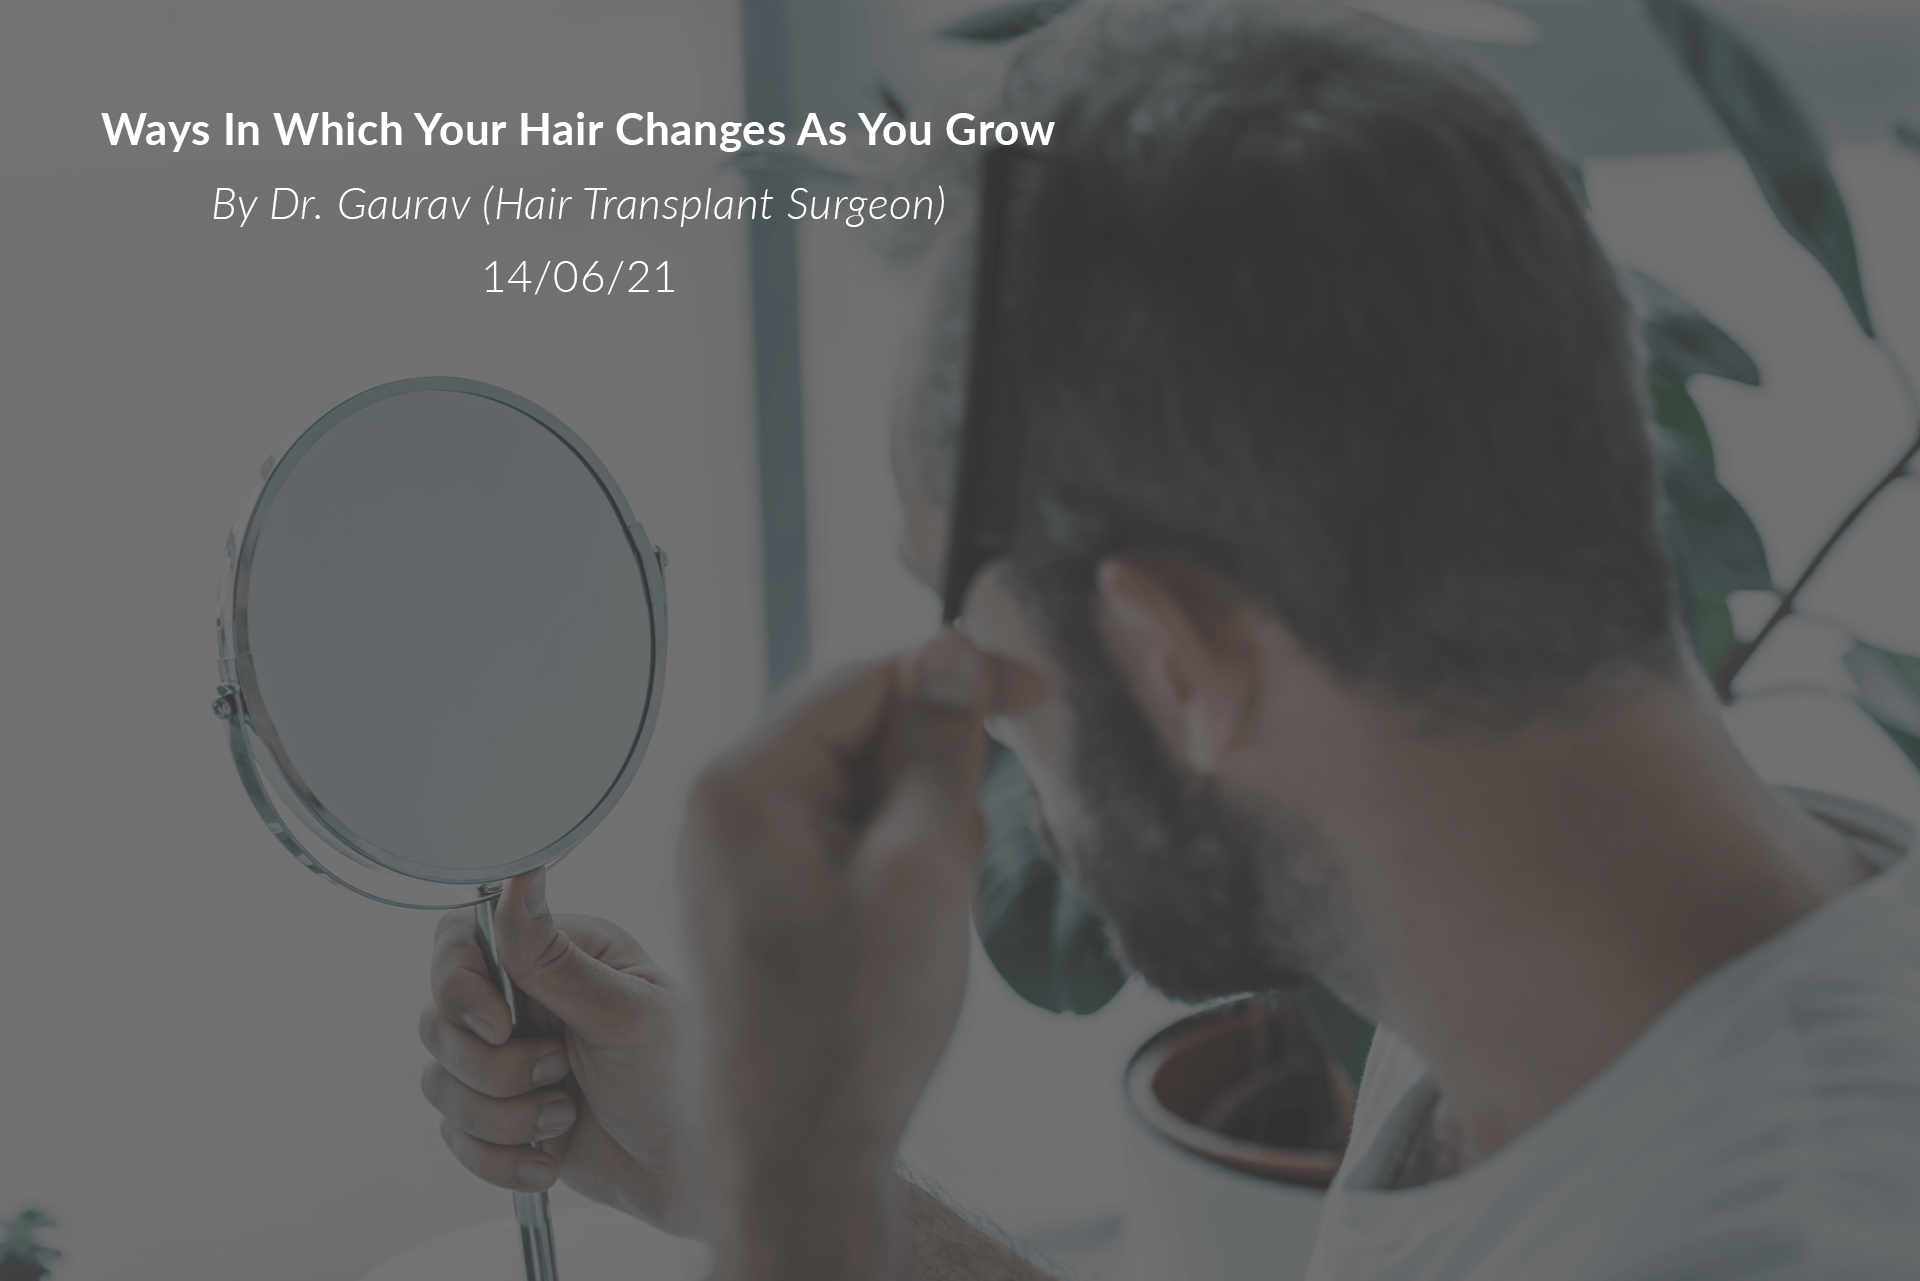 Ways In Which Your Hair Changes As You Grow